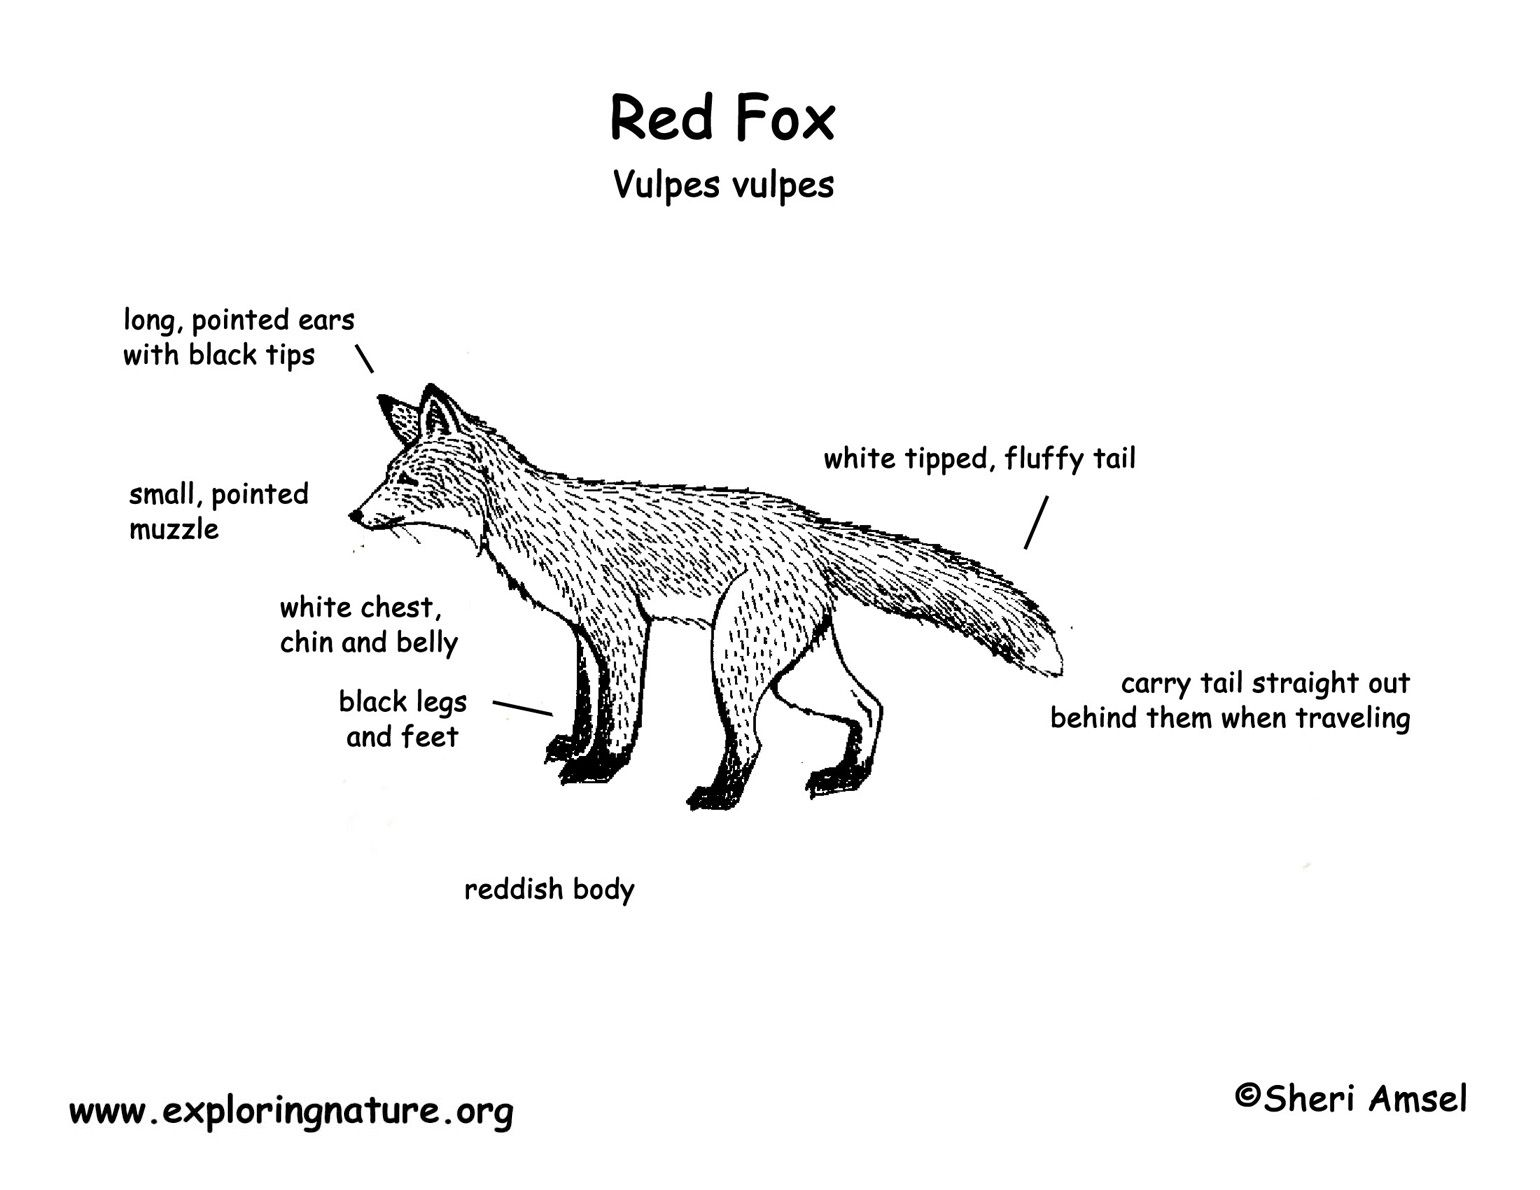 Body Diagram Of A Red Fox